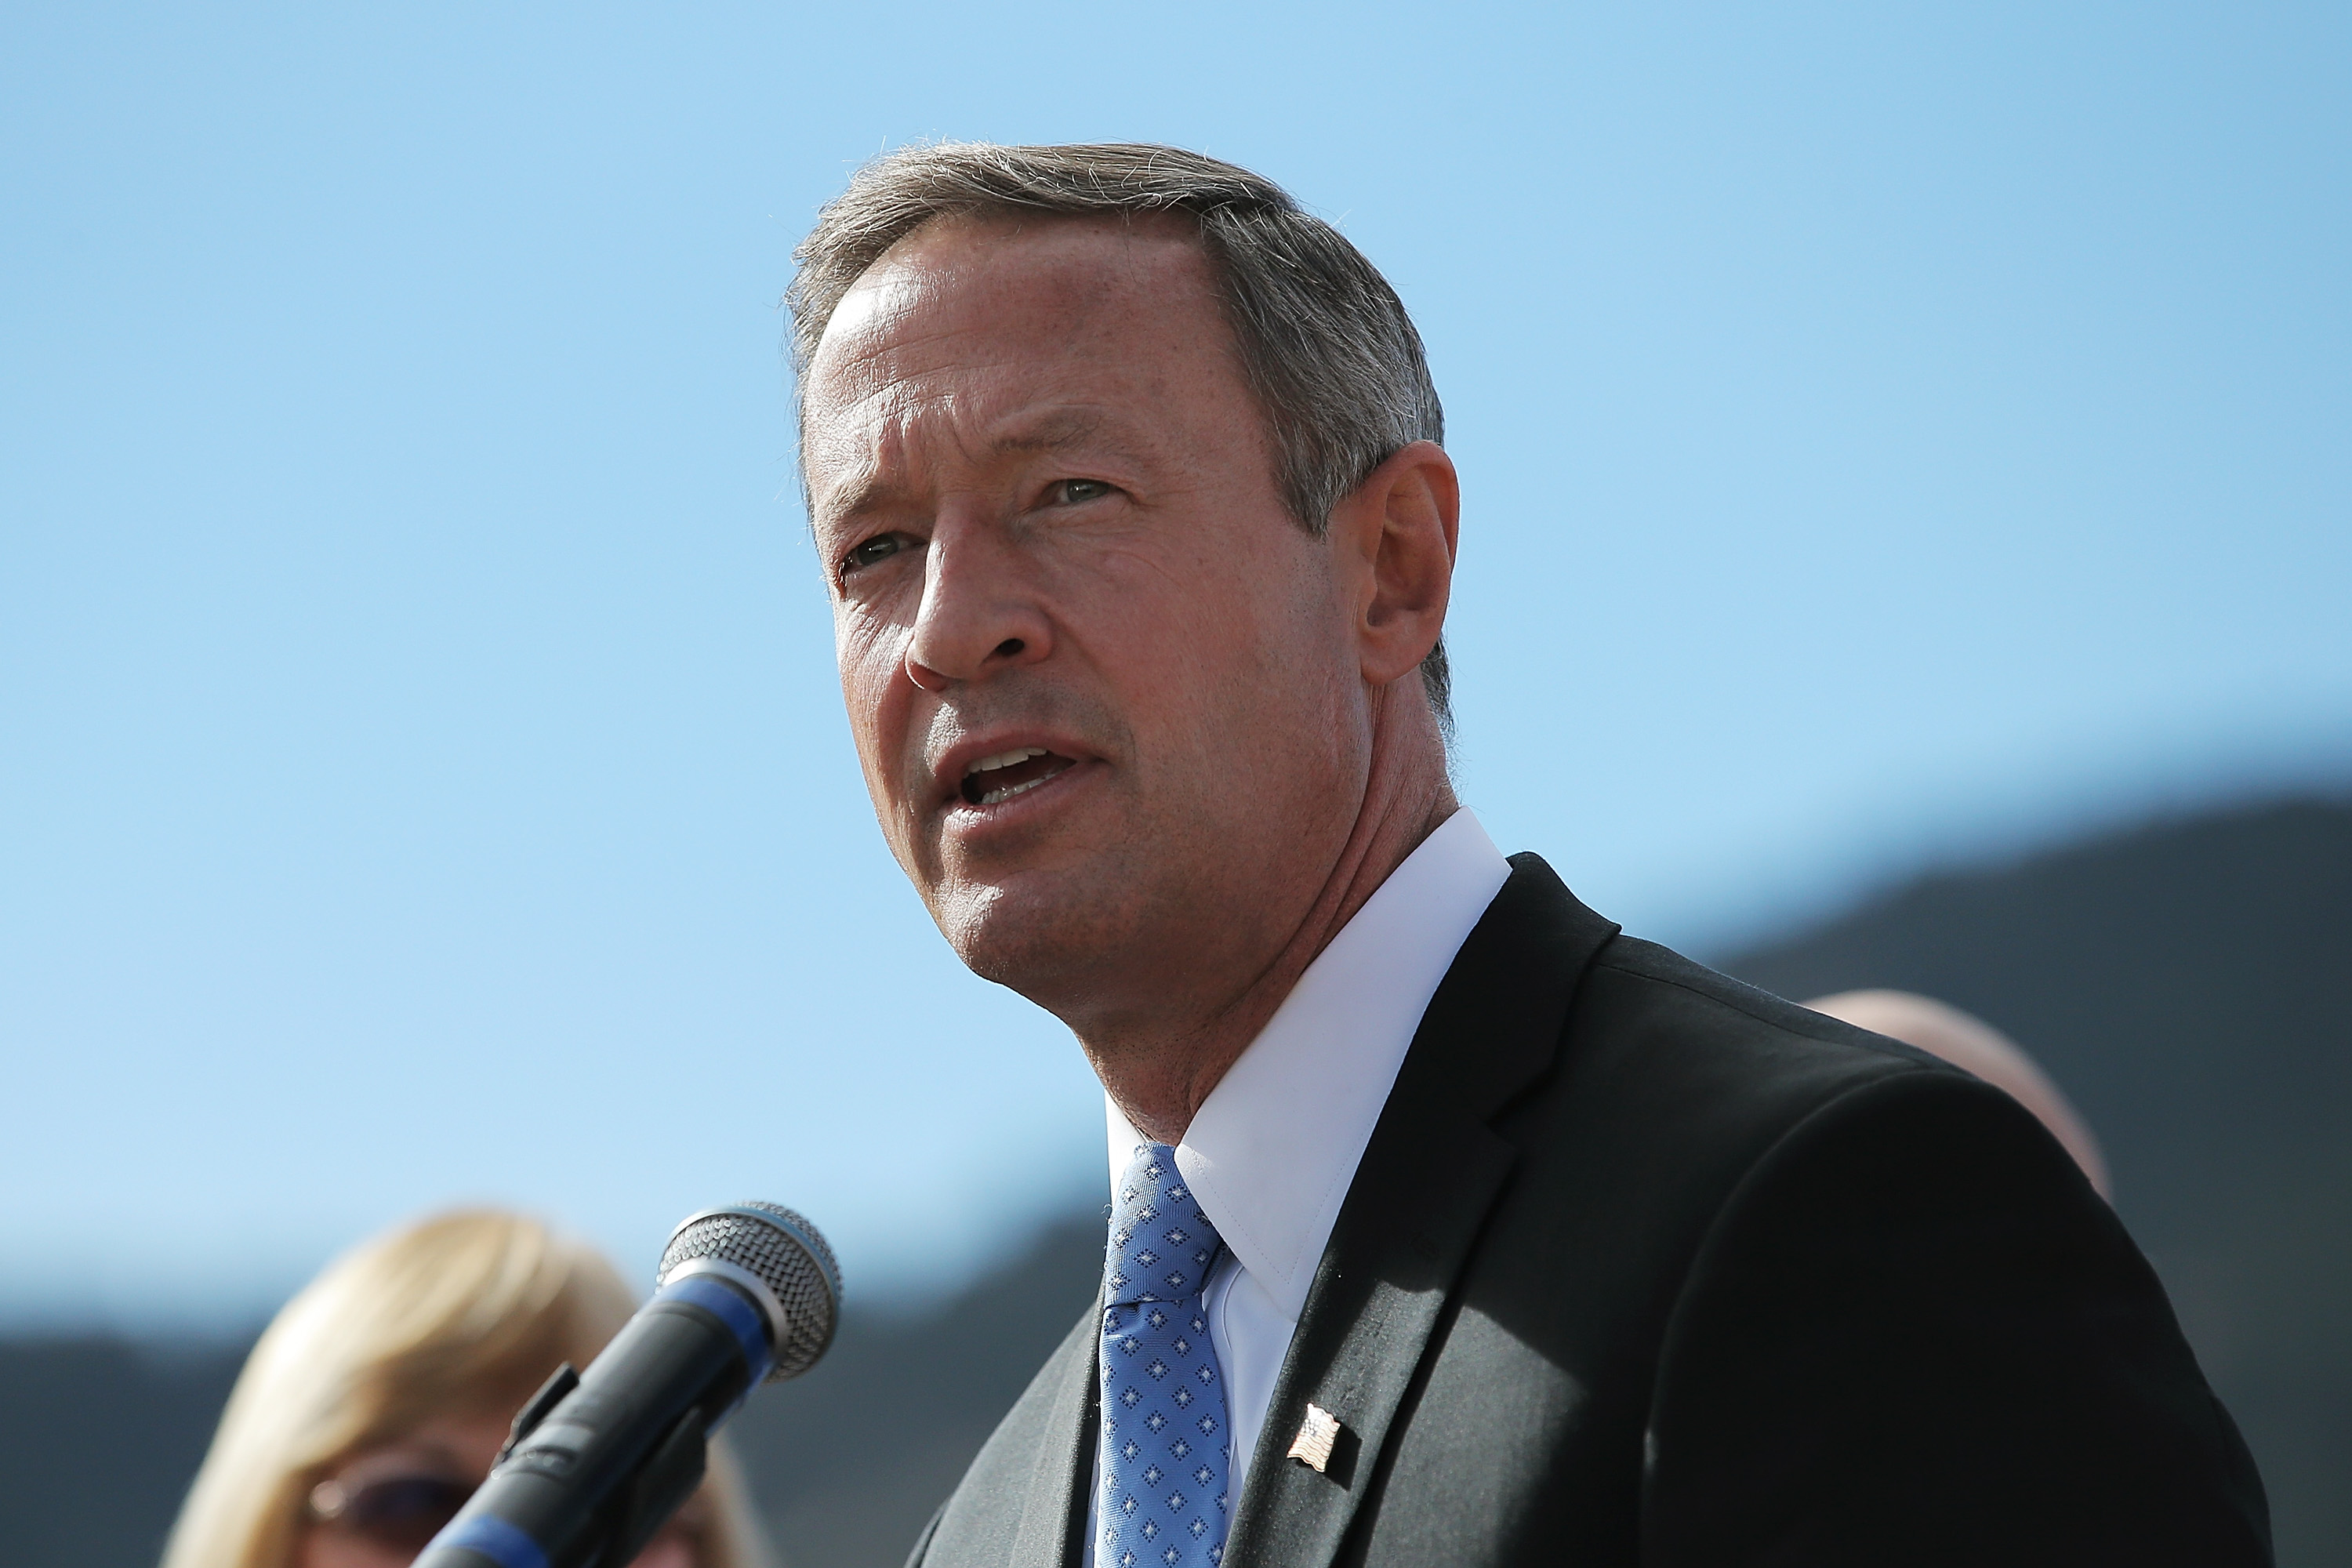 Martin O'Malley speaks hours before a Republican presidential debate in Boulder, Colo., on Oct. 28, 2015